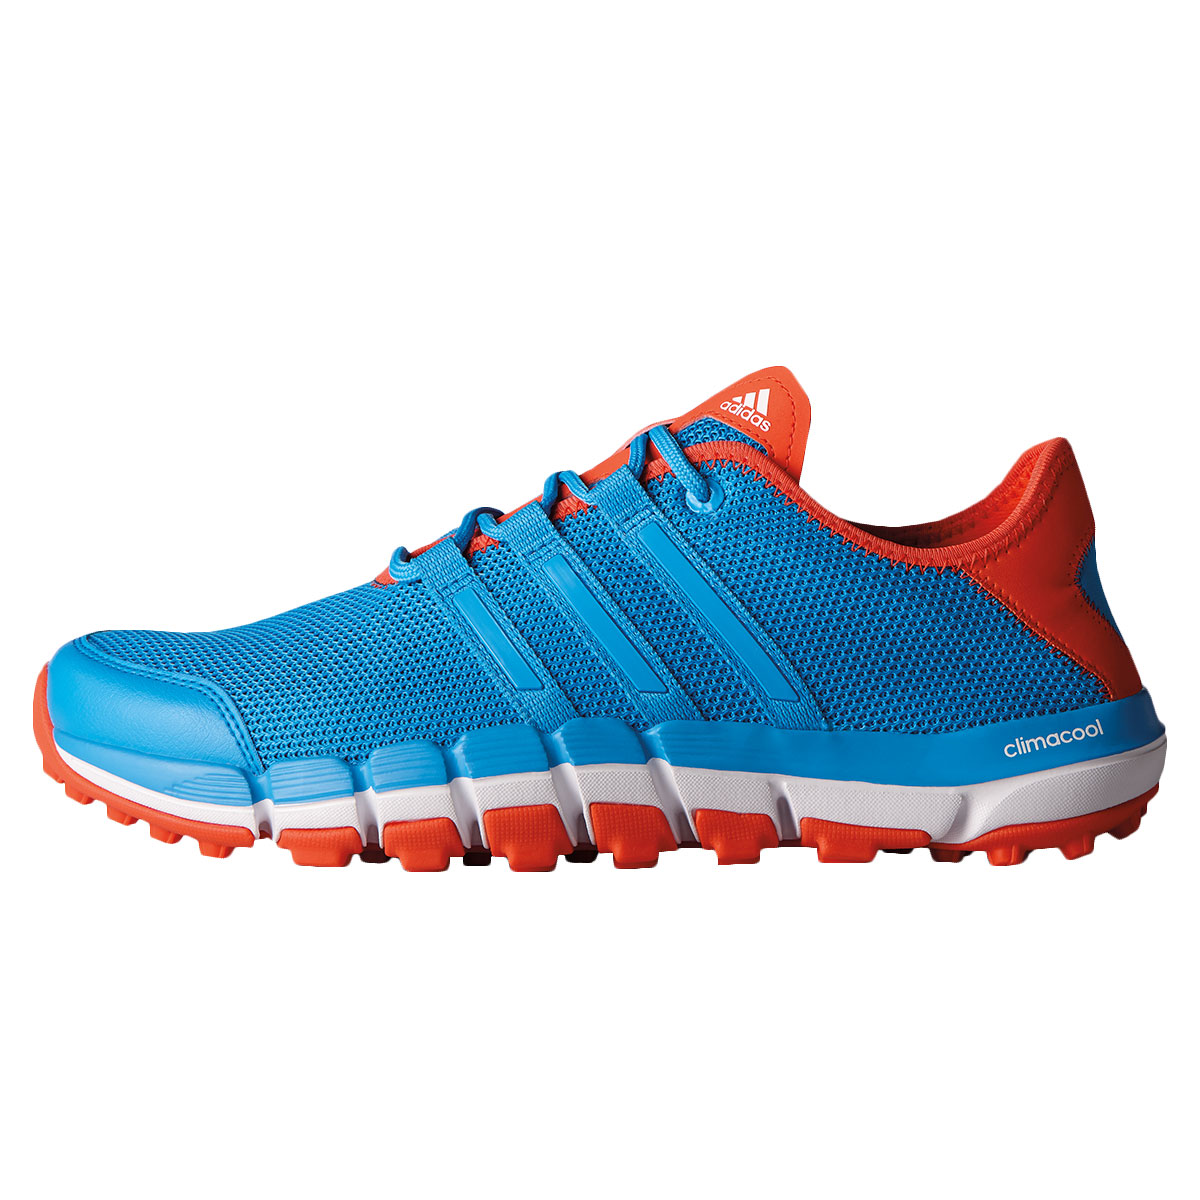 Adidas Golf 2017 Mens Climacool ST Golf Shoes